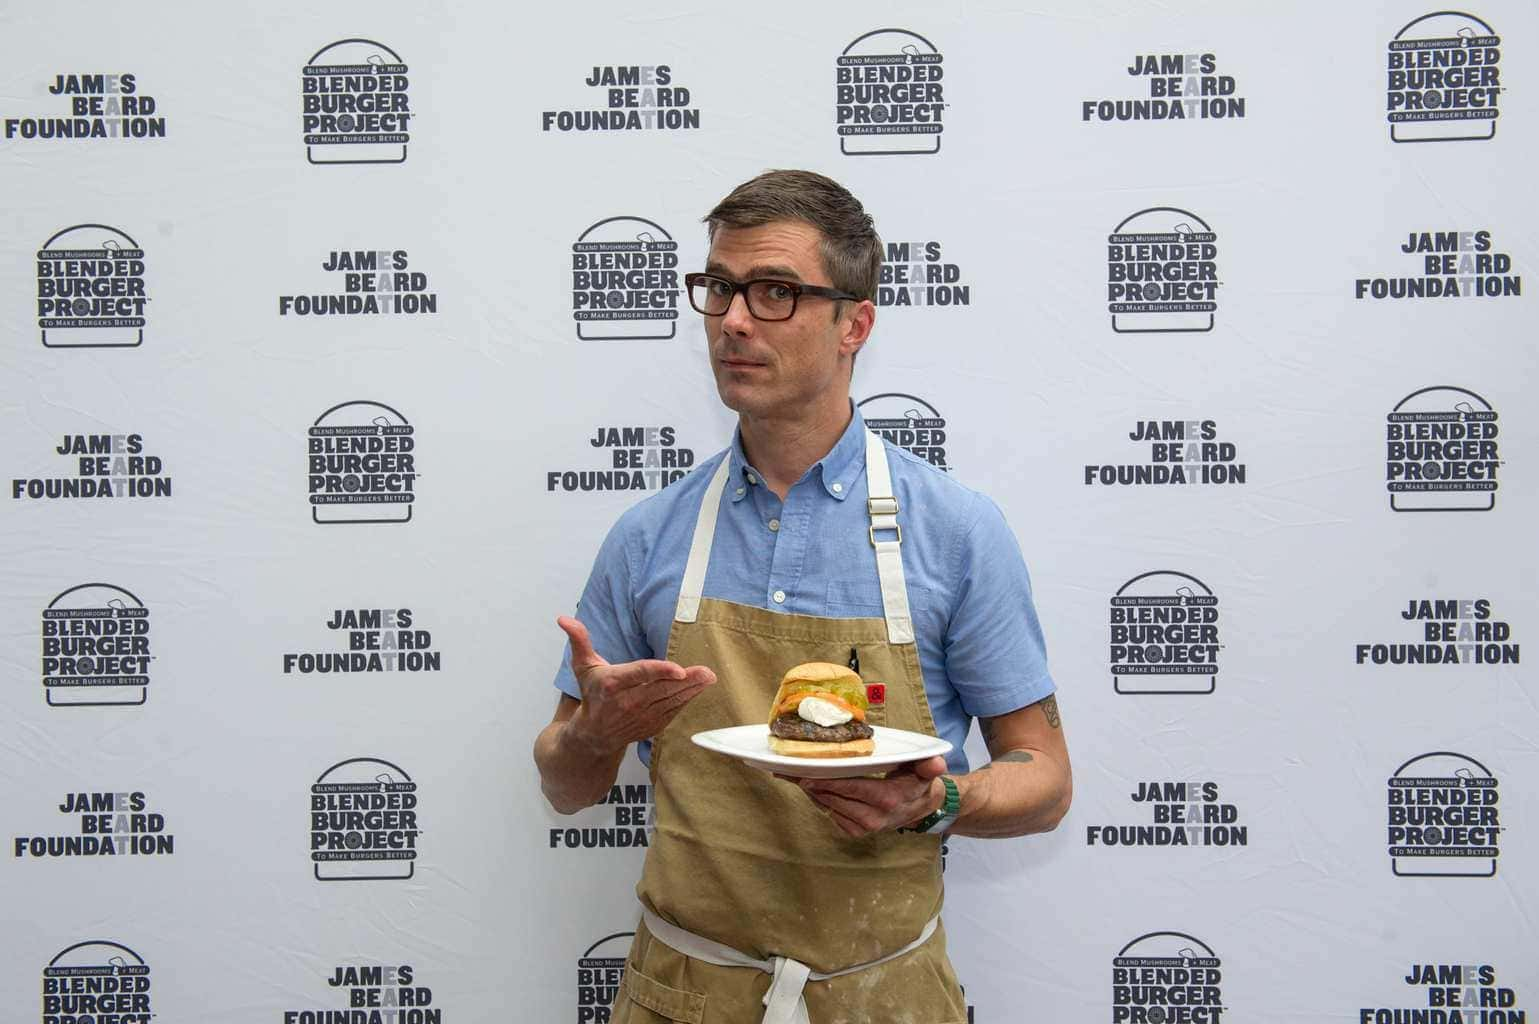 James Beard Foundation's Blended Burger Project